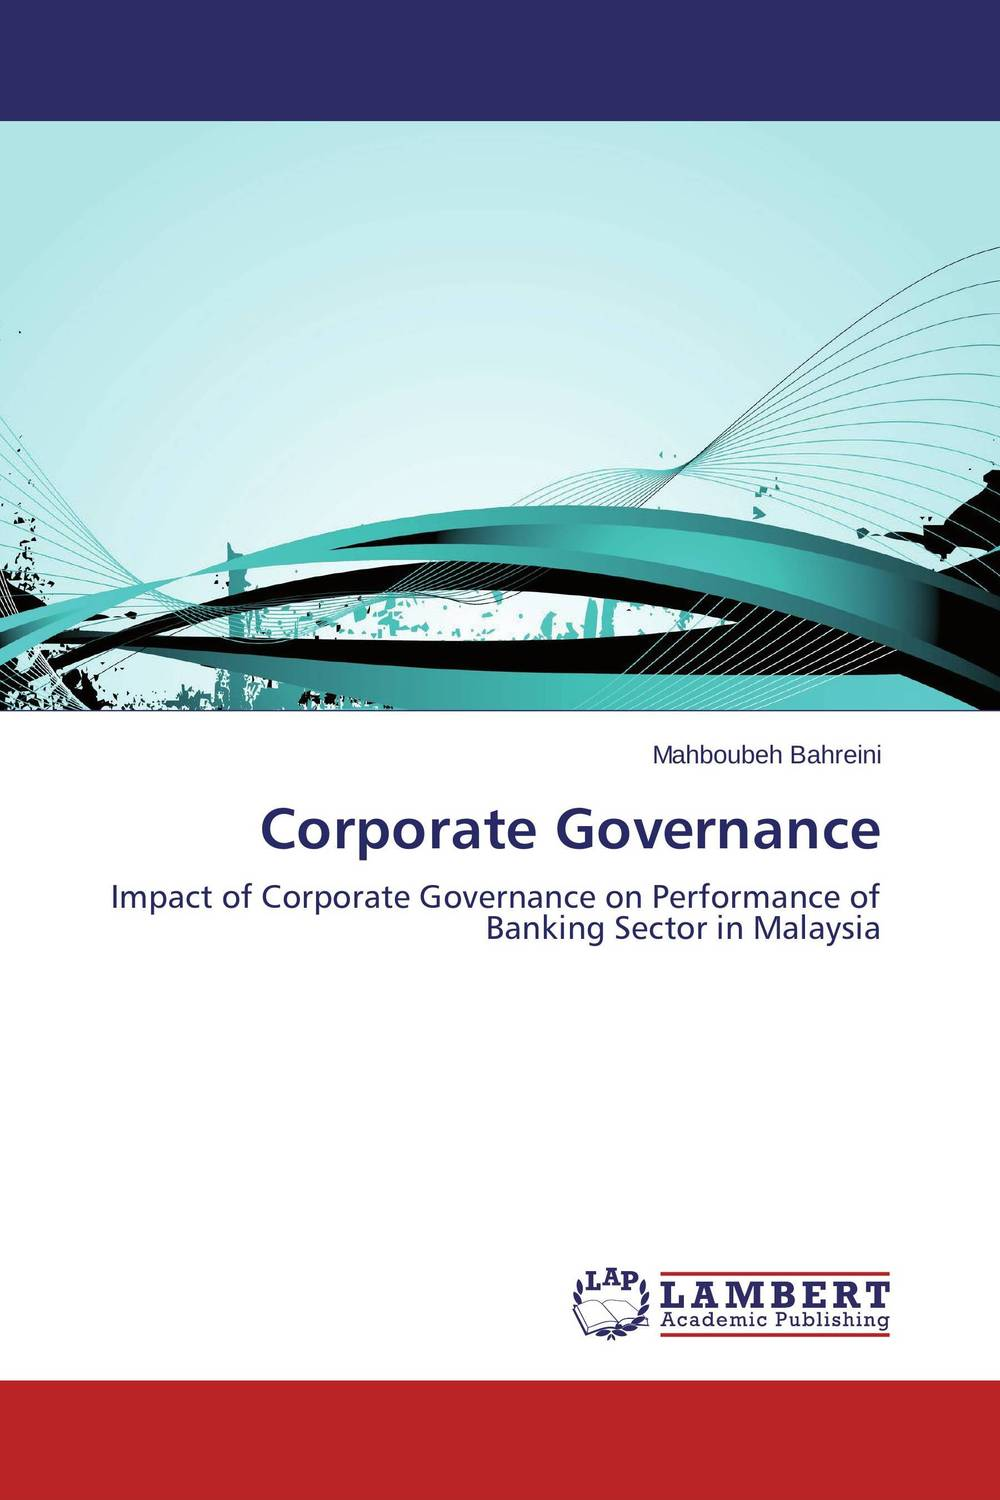 Corporate Governance shariah governance structure of ibf in malaysia indonesia and kuwait